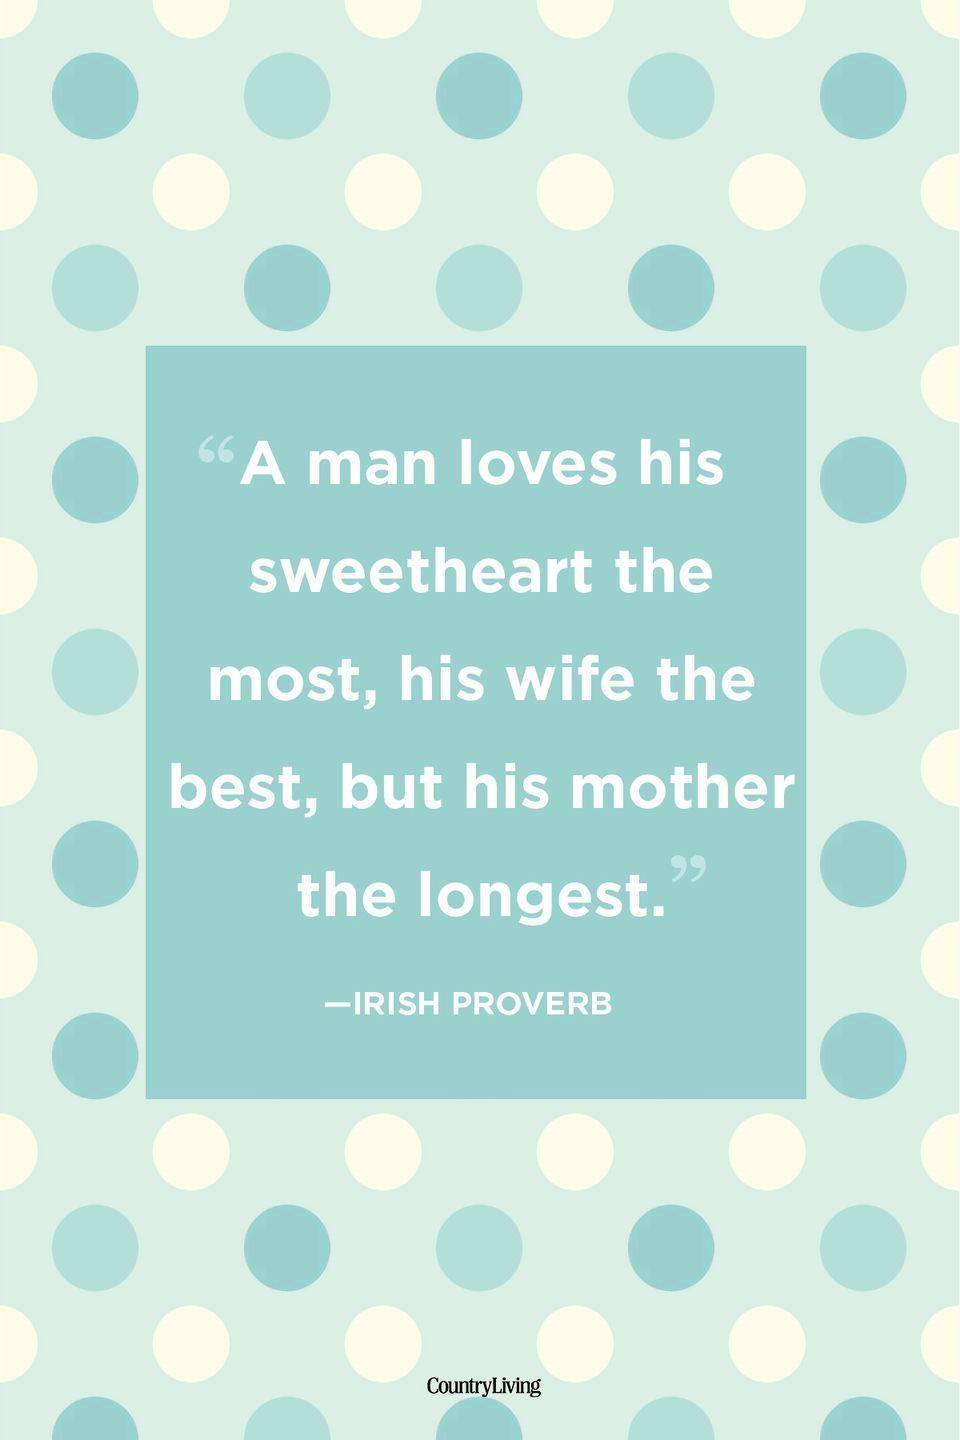 "<p>""A man loves his sweetheart the most, his wife the best, but his mother the longest.""</p>"